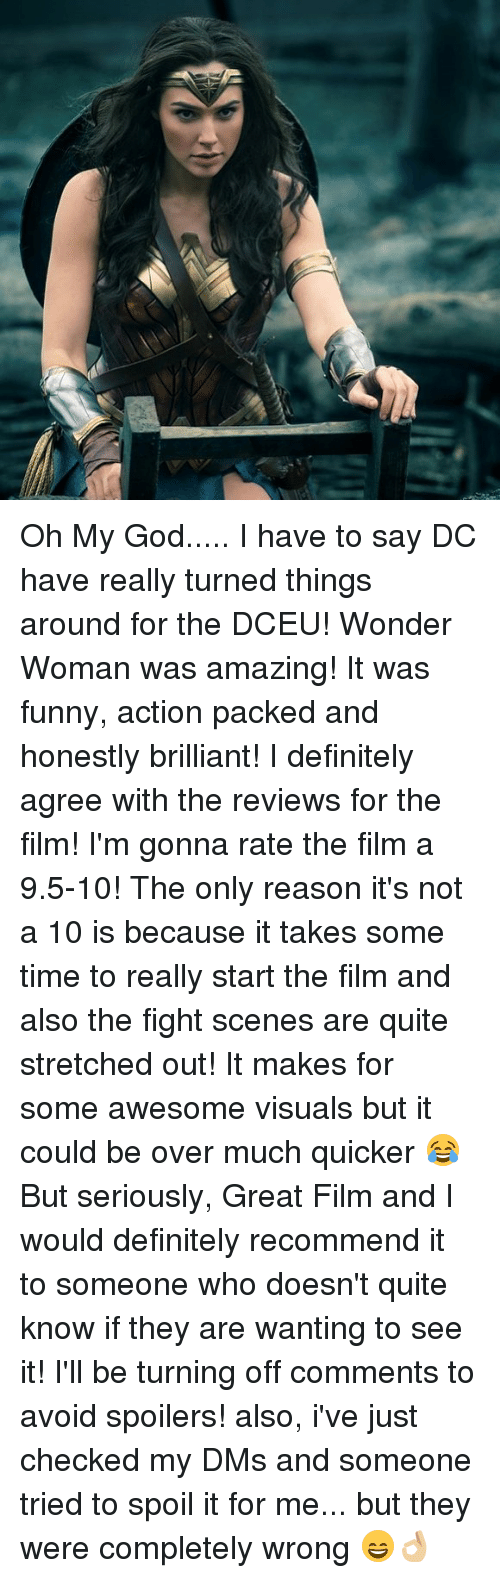 Spoiles: Oh My God..... I have to say DC have really turned things around for the DCEU! Wonder Woman was amazing! It was funny, action packed and honestly brilliant! I definitely agree with the reviews for the film! I'm gonna rate the film a 9.5-10! The only reason it's not a 10 is because it takes some time to really start the film and also the fight scenes are quite stretched out! It makes for some awesome visuals but it could be over much quicker 😂 But seriously, Great Film and I would definitely recommend it to someone who doesn't quite know if they are wanting to see it! I'll be turning off comments to avoid spoilers! also, i've just checked my DMs and someone tried to spoil it for me... but they were completely wrong 😄👌🏼